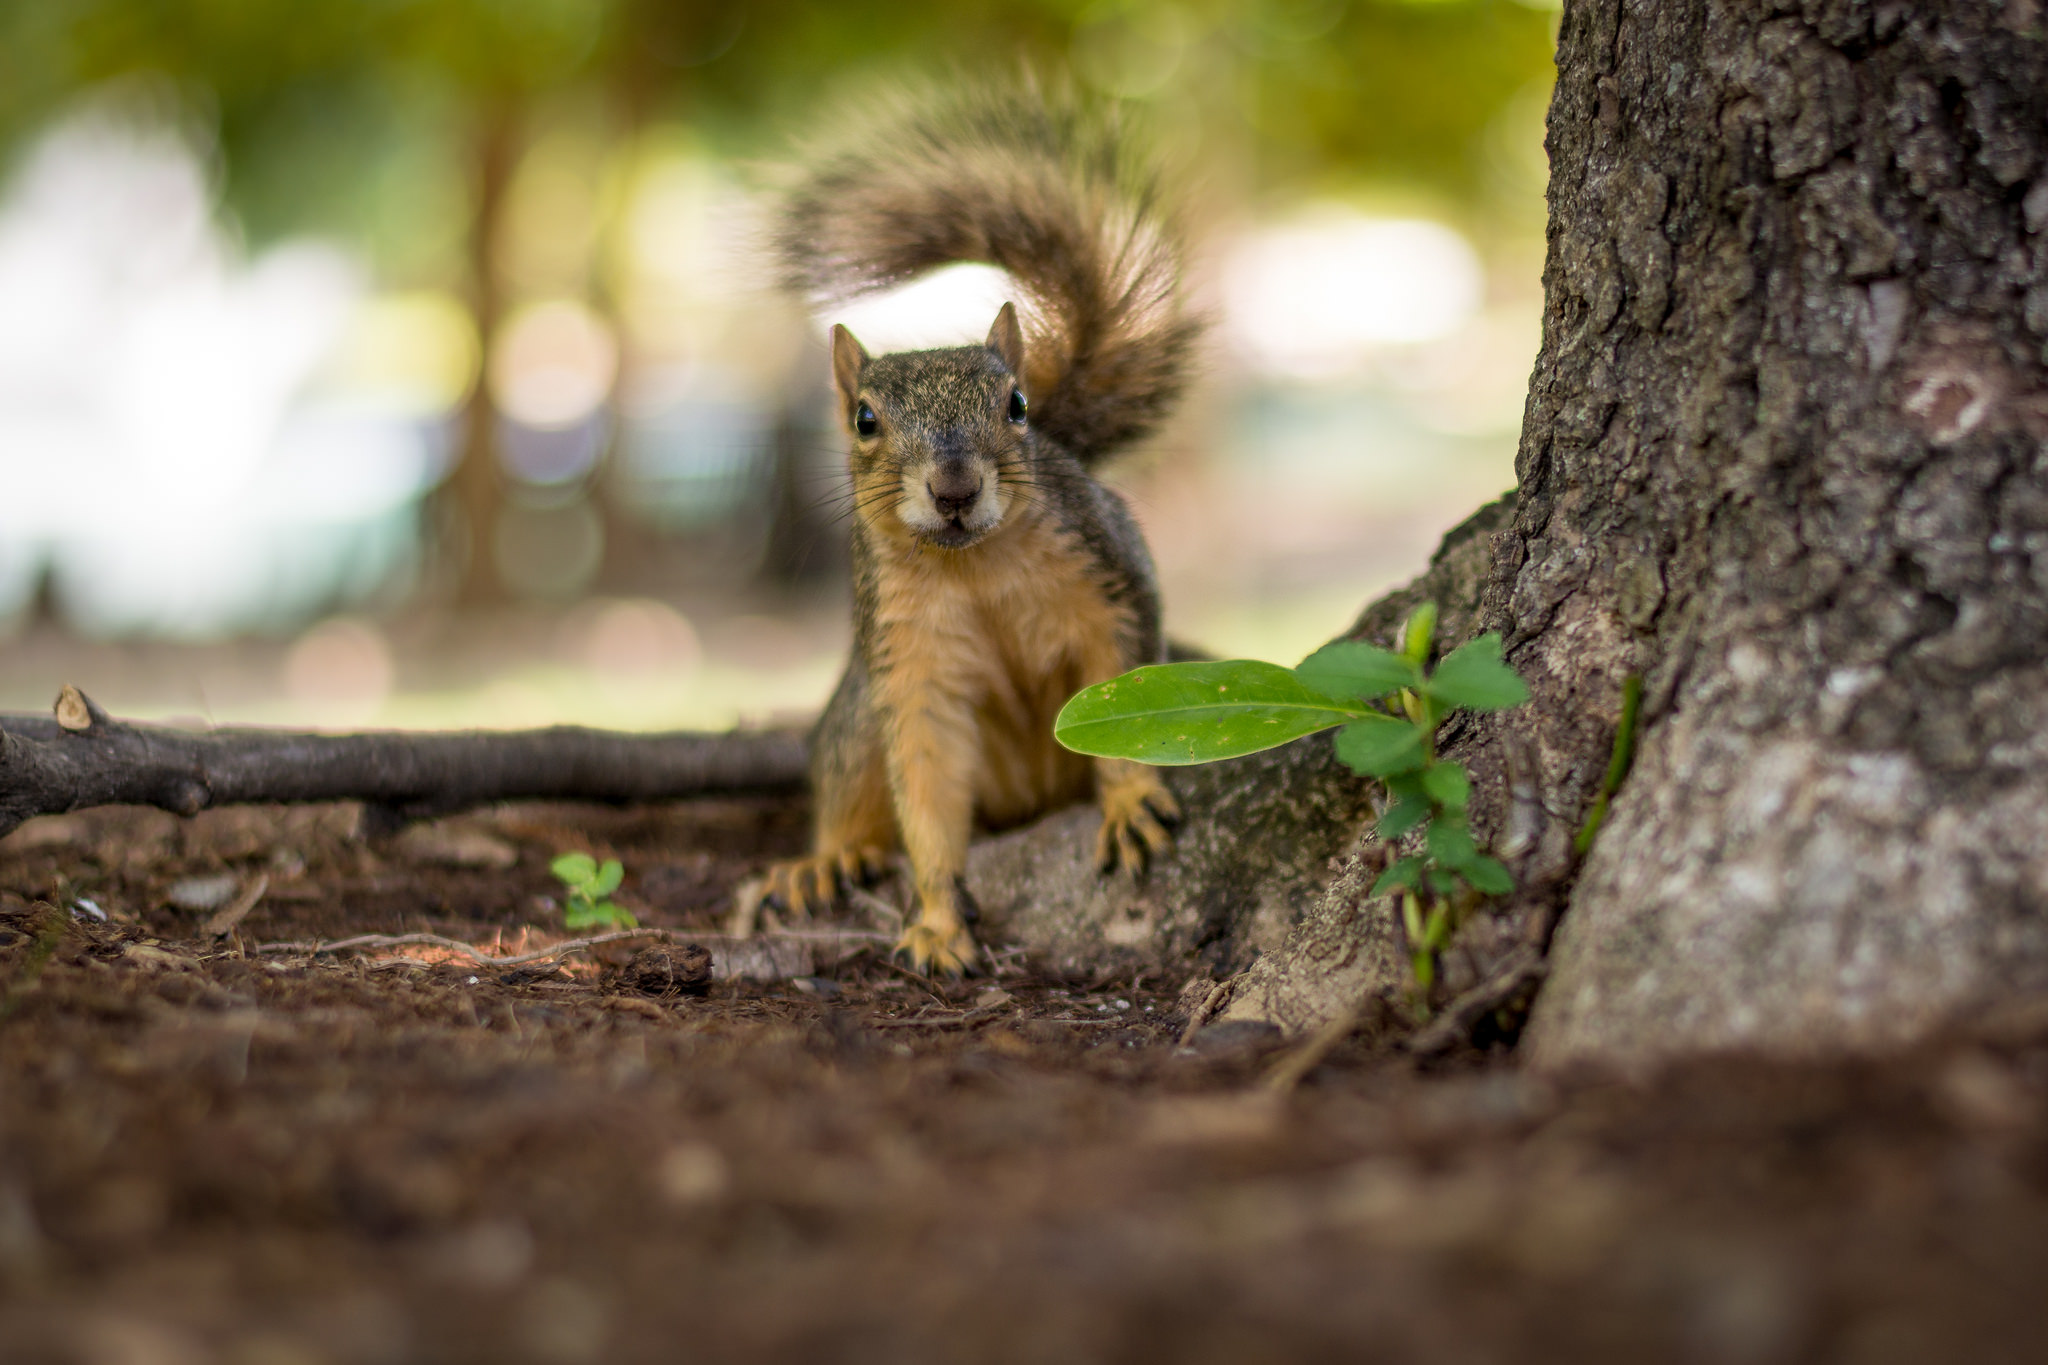 This jittery squirrel was moving all over the place, so I shot with a speed of 1/180 second to get a sharp picture. tips for getting tack sharp photos